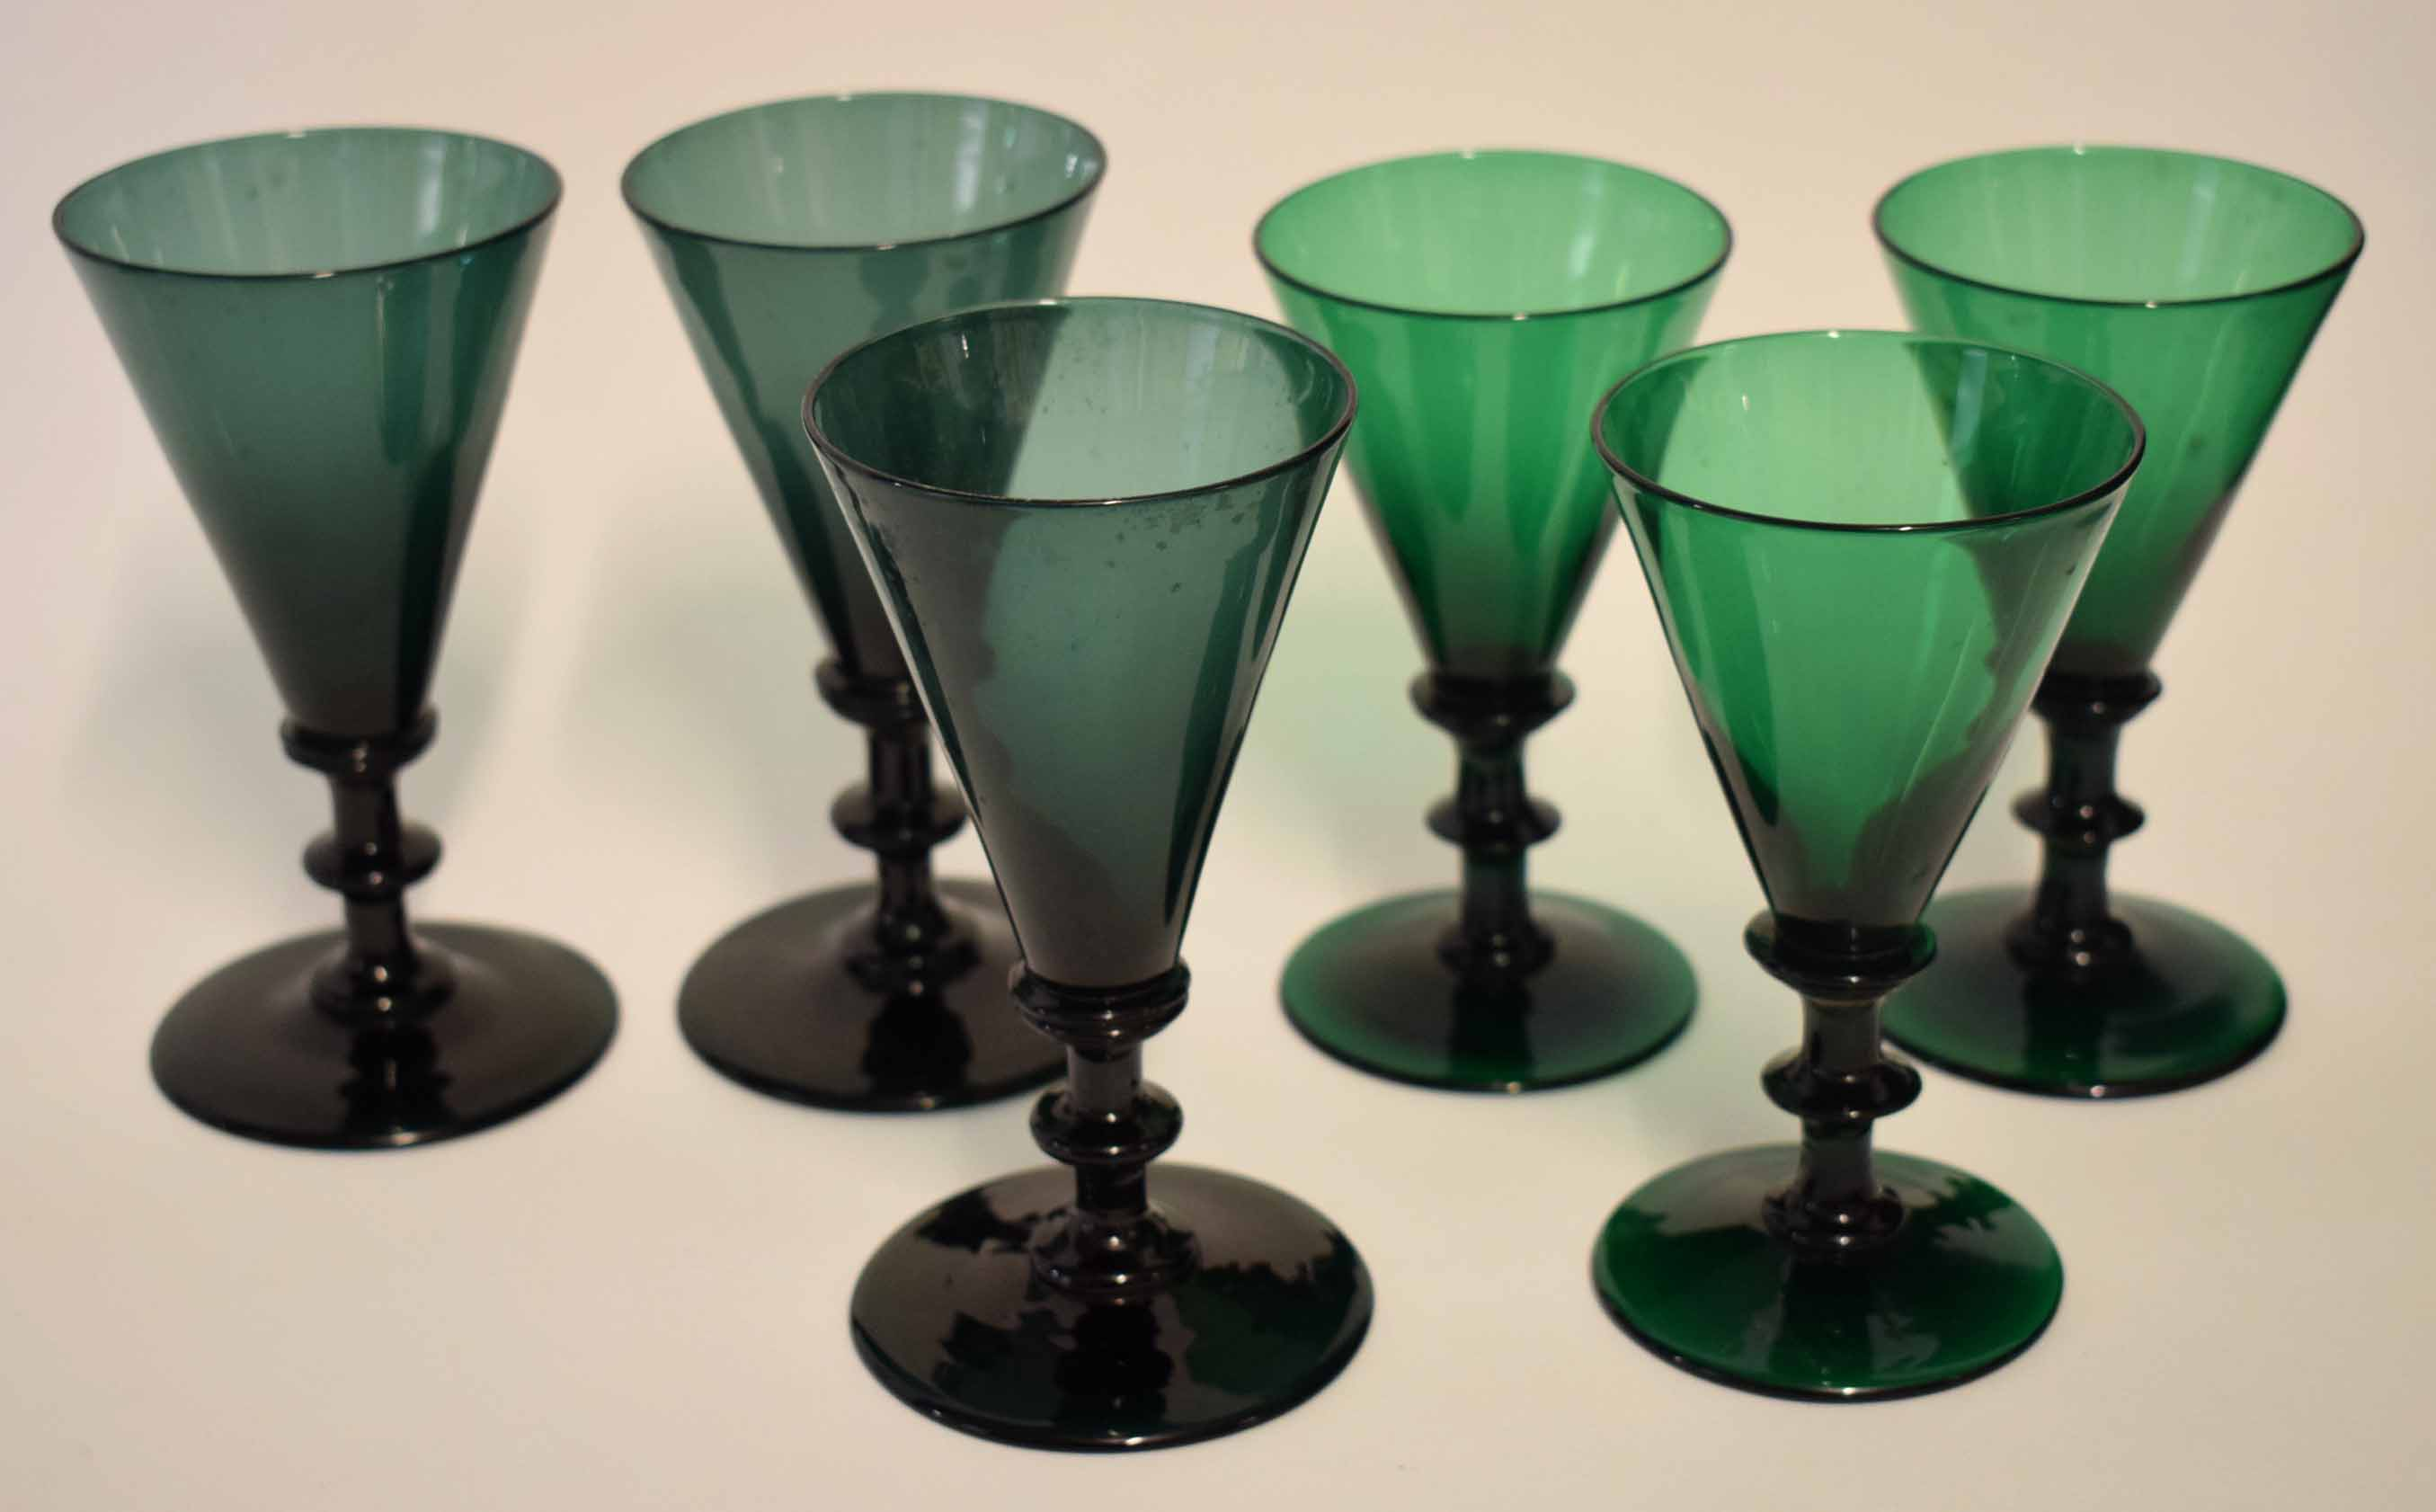 Lot 84 - Group of six green glass wine glasses of tapered shape, 14cm high